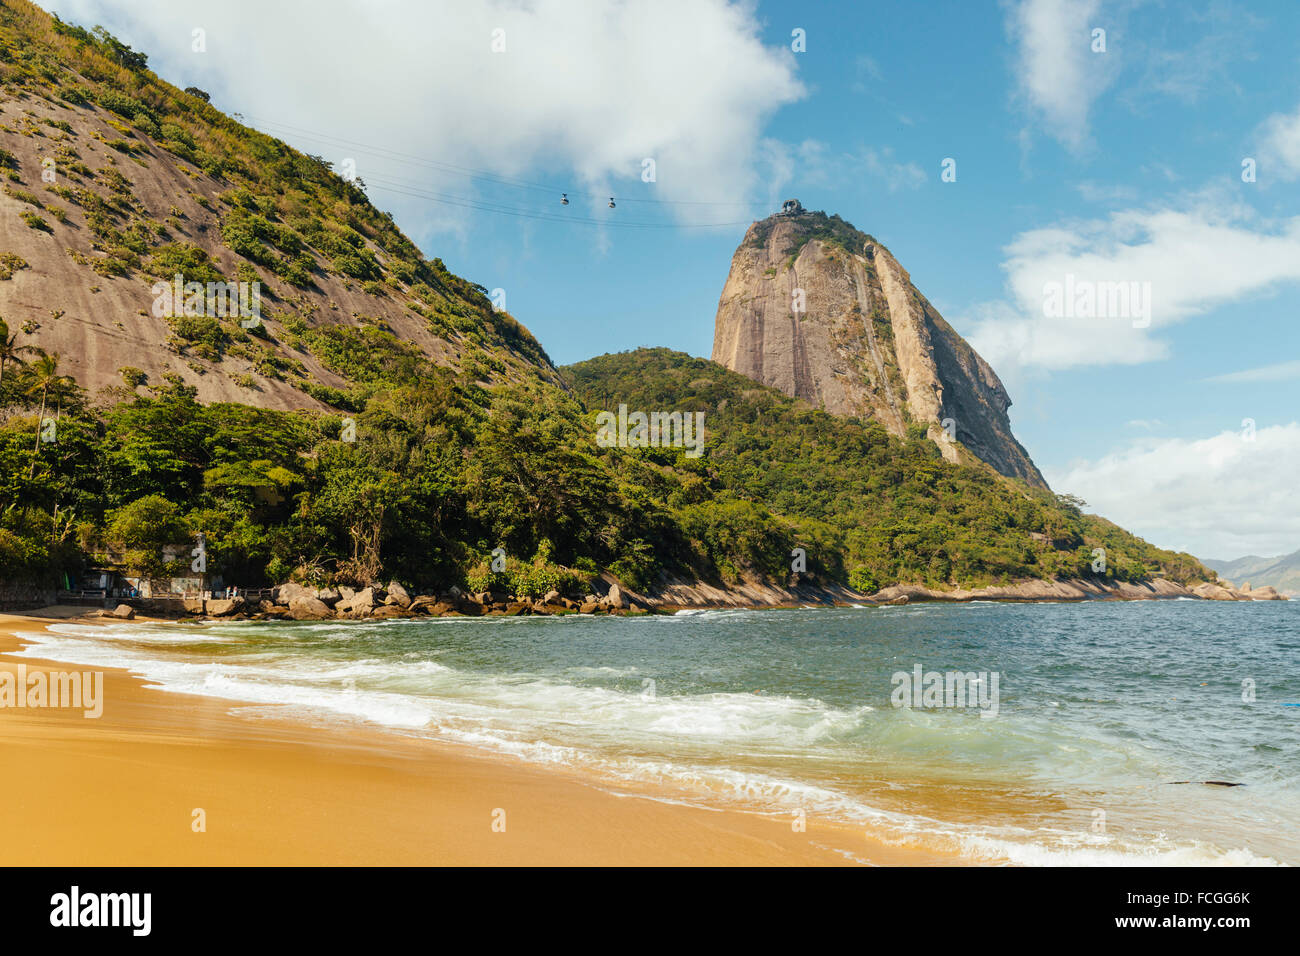 Brazil Rio de Janeiro Morro da Urca and ropeway to Sugarloaf Mountain Stock Photo